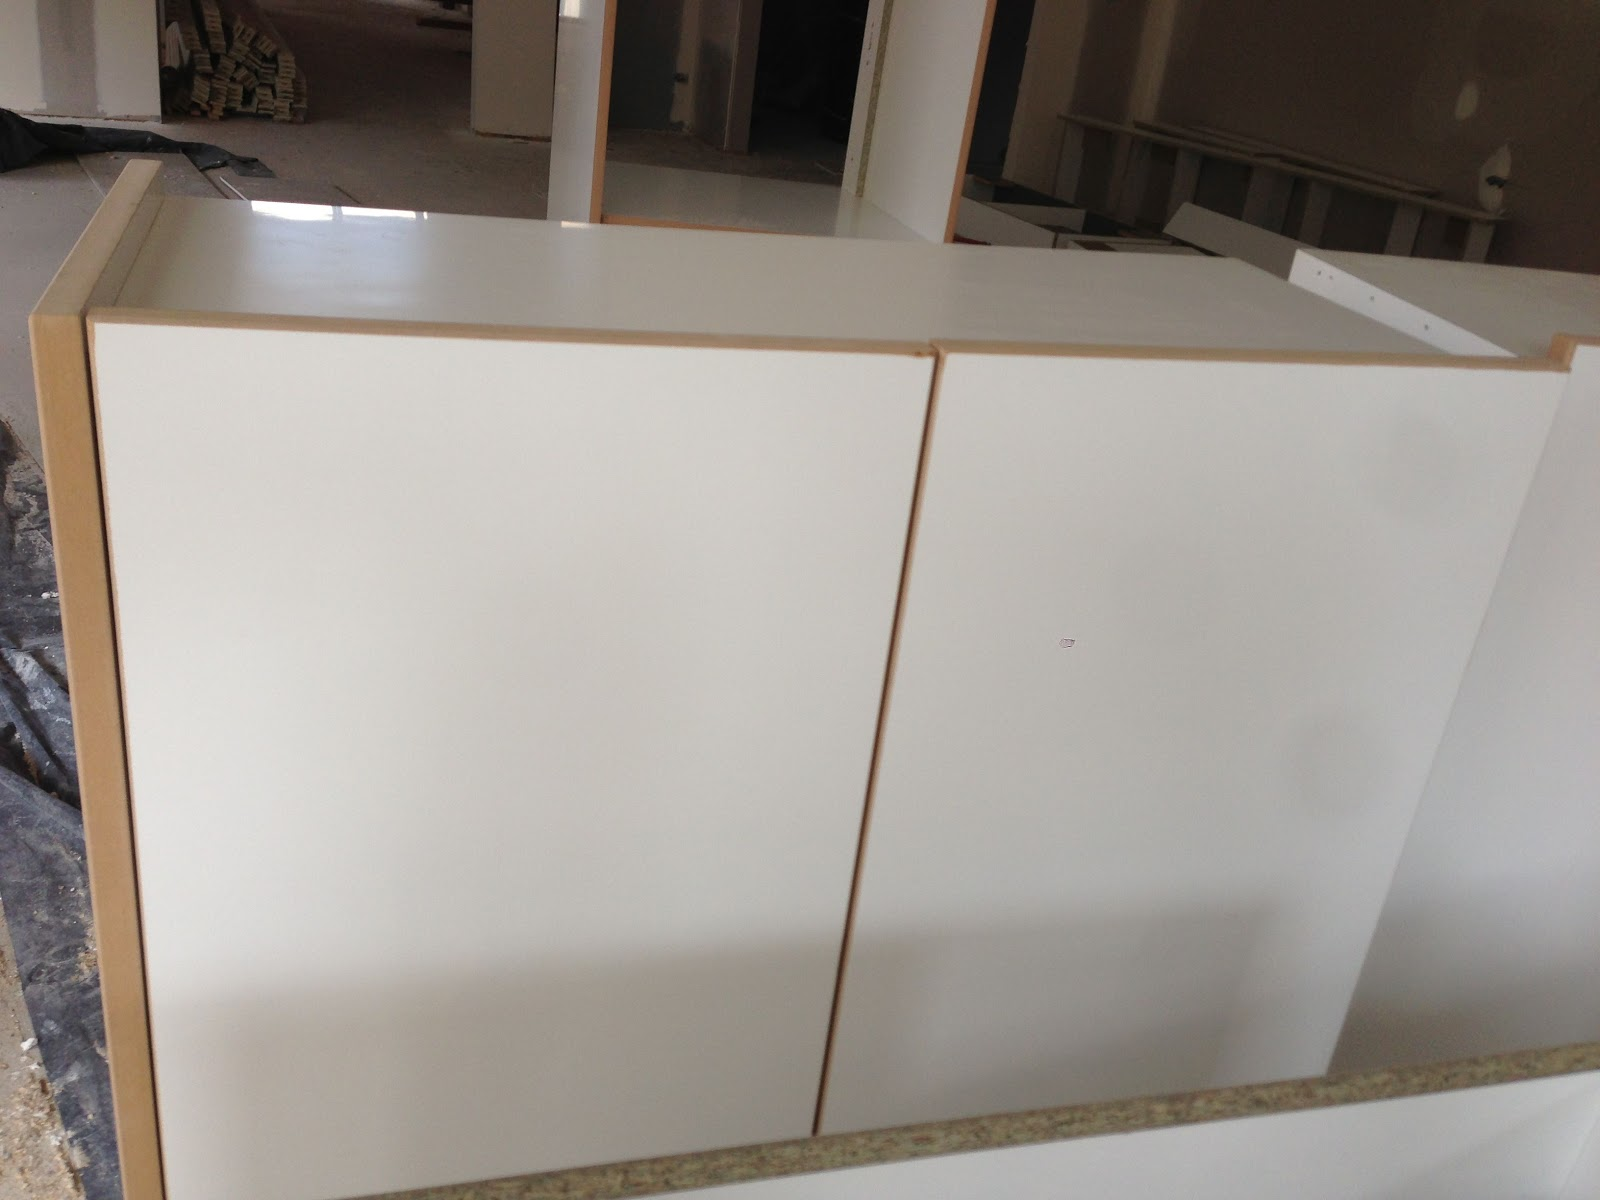 cabinets have the weird brown border along the kitchen cabinets